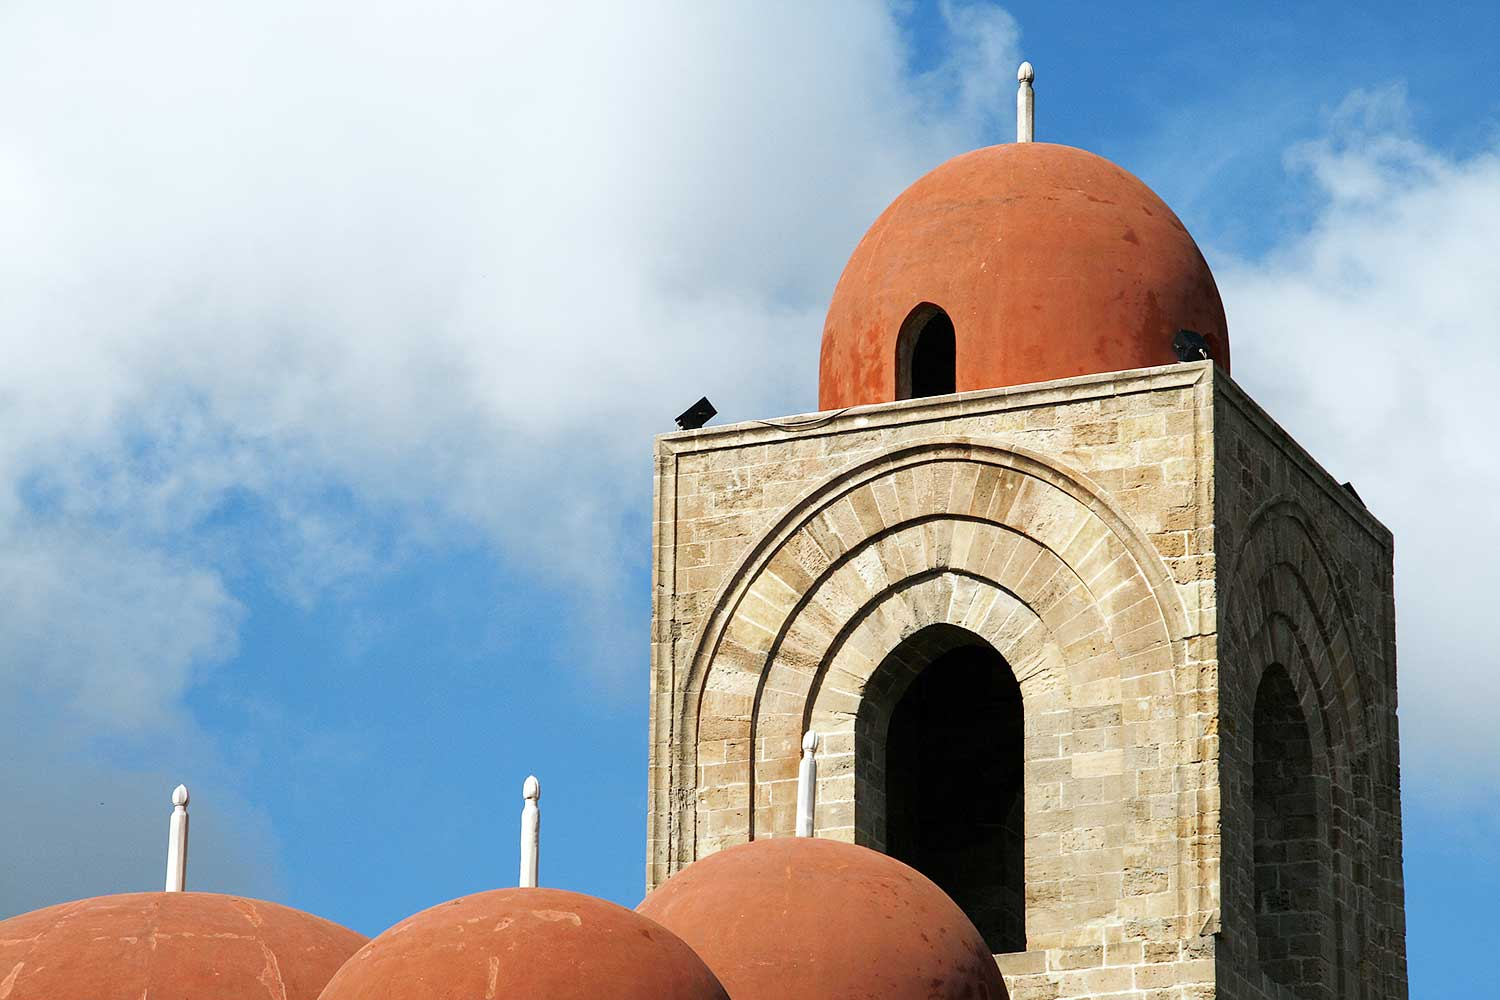 The red domes of the San Giovanni degli Eremiti church